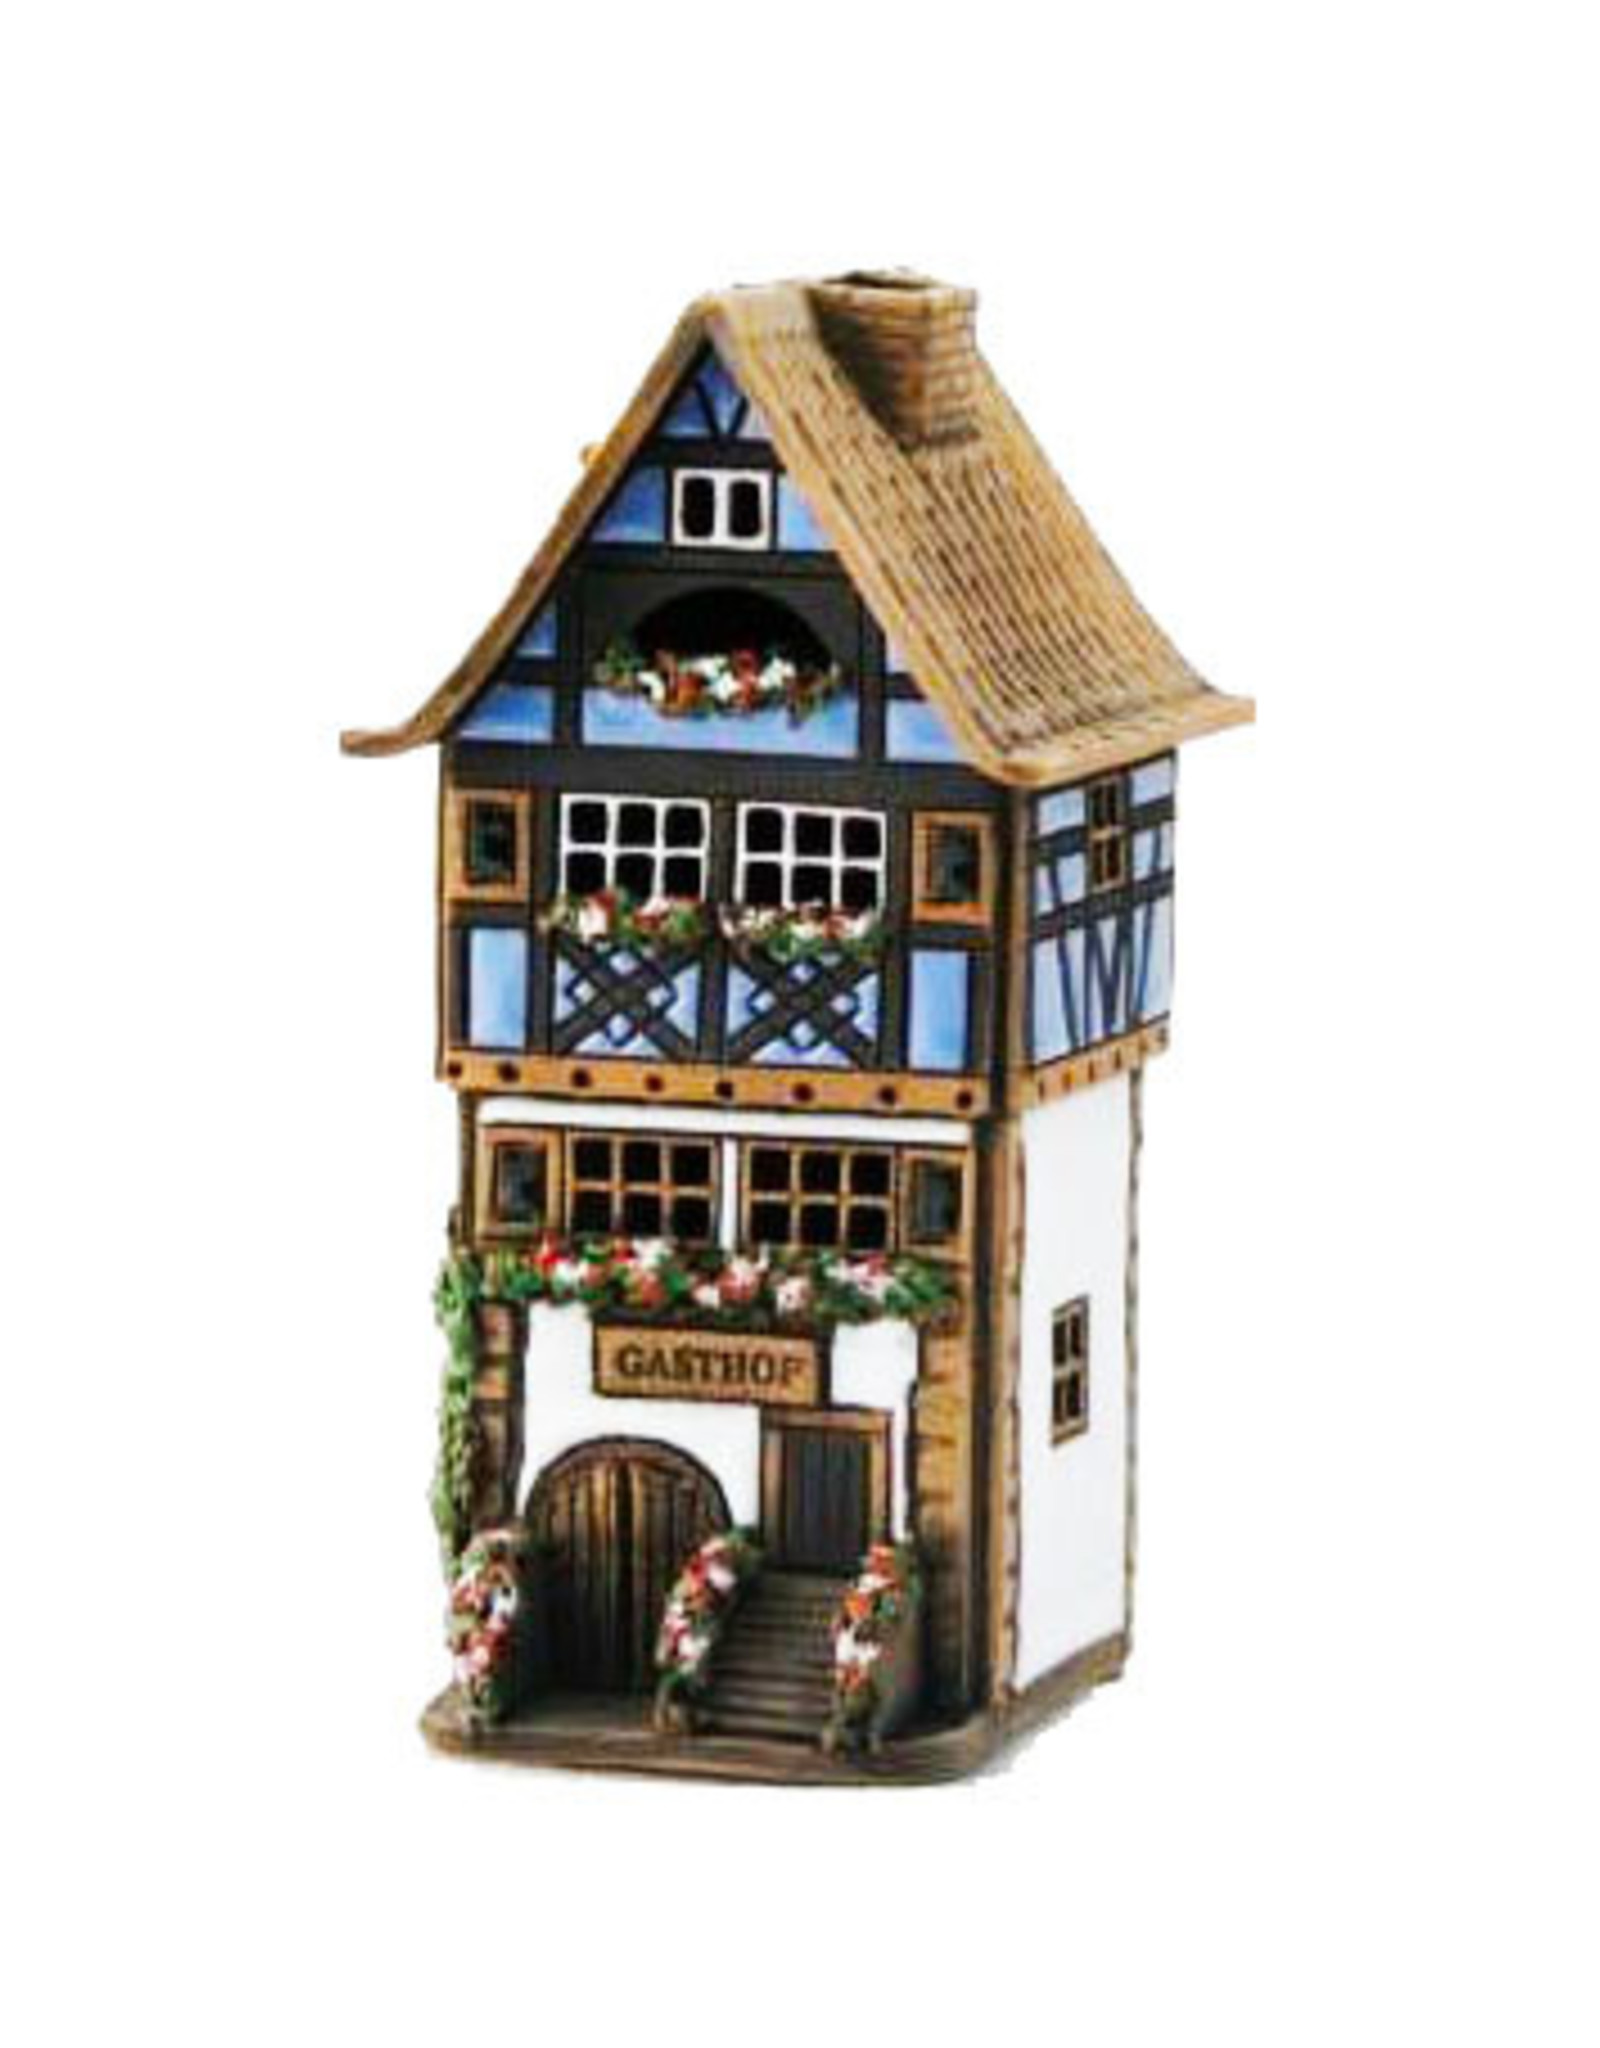 Blue Gasthaus Candle House